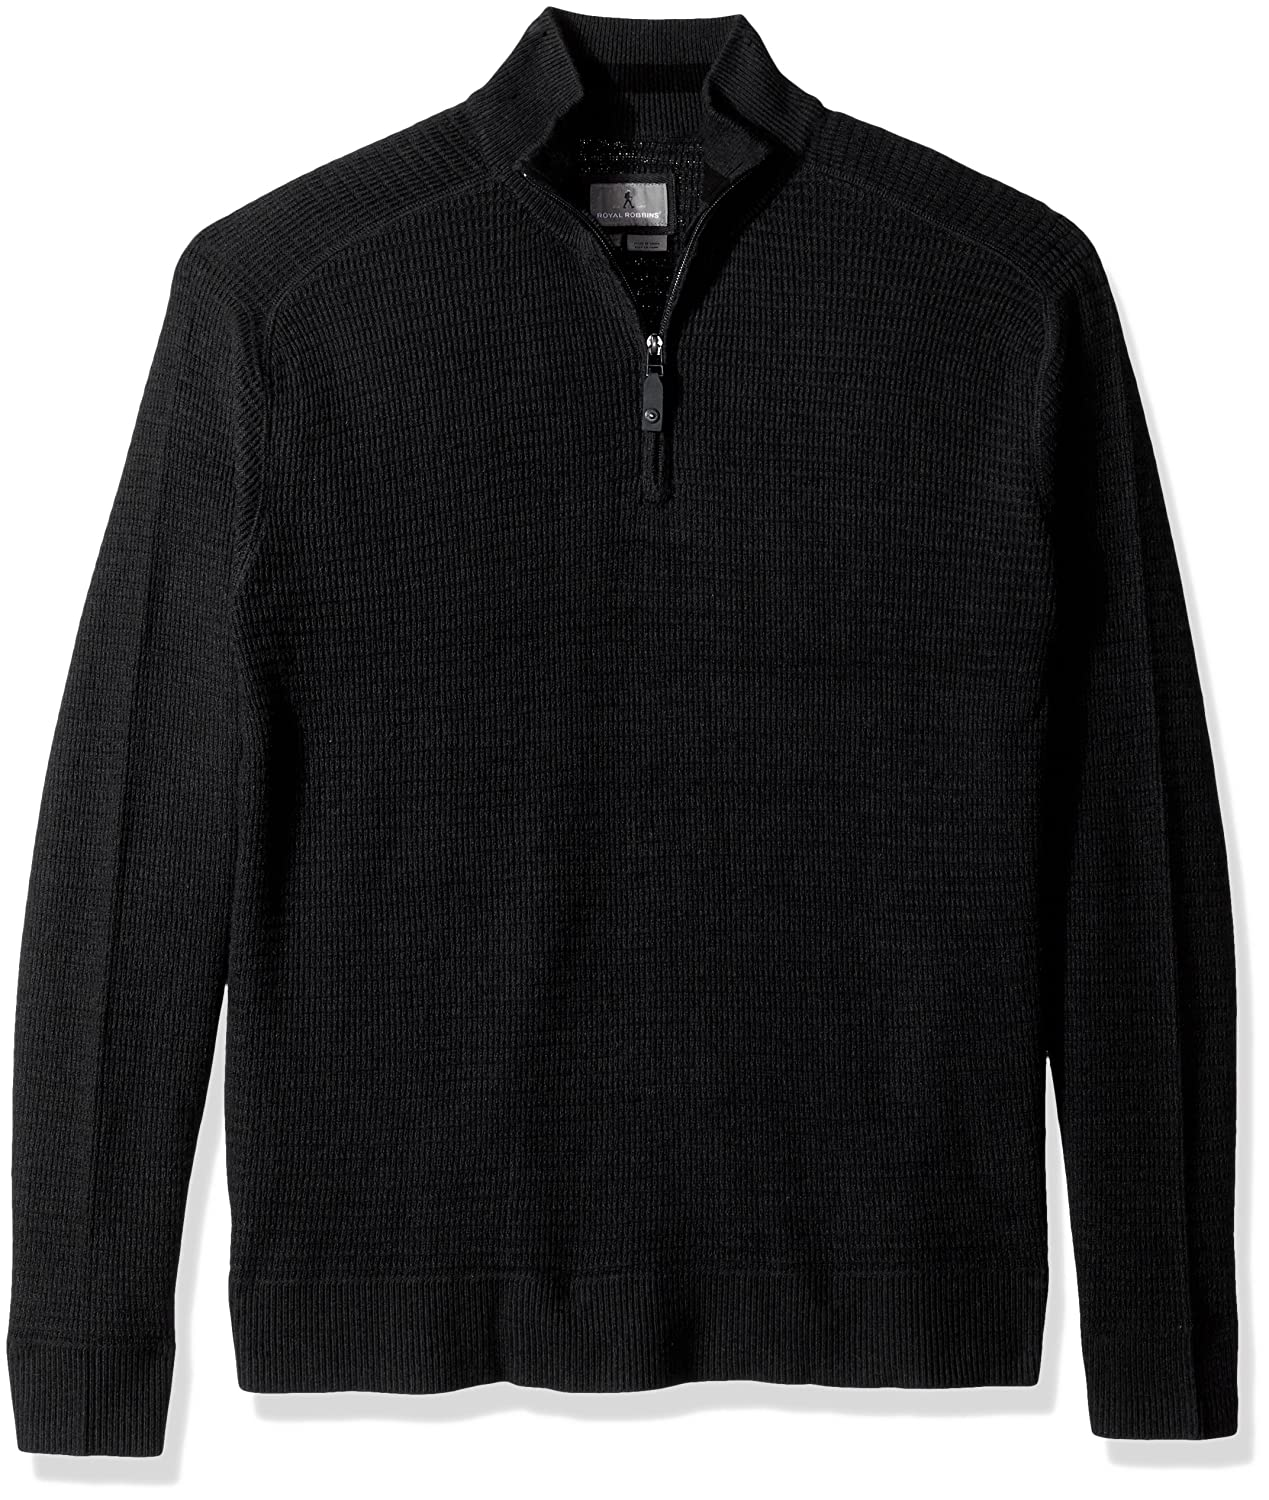 Royal Robbins Men's All Season Merino Thermal 1/4 Zip, Charcoal, Small